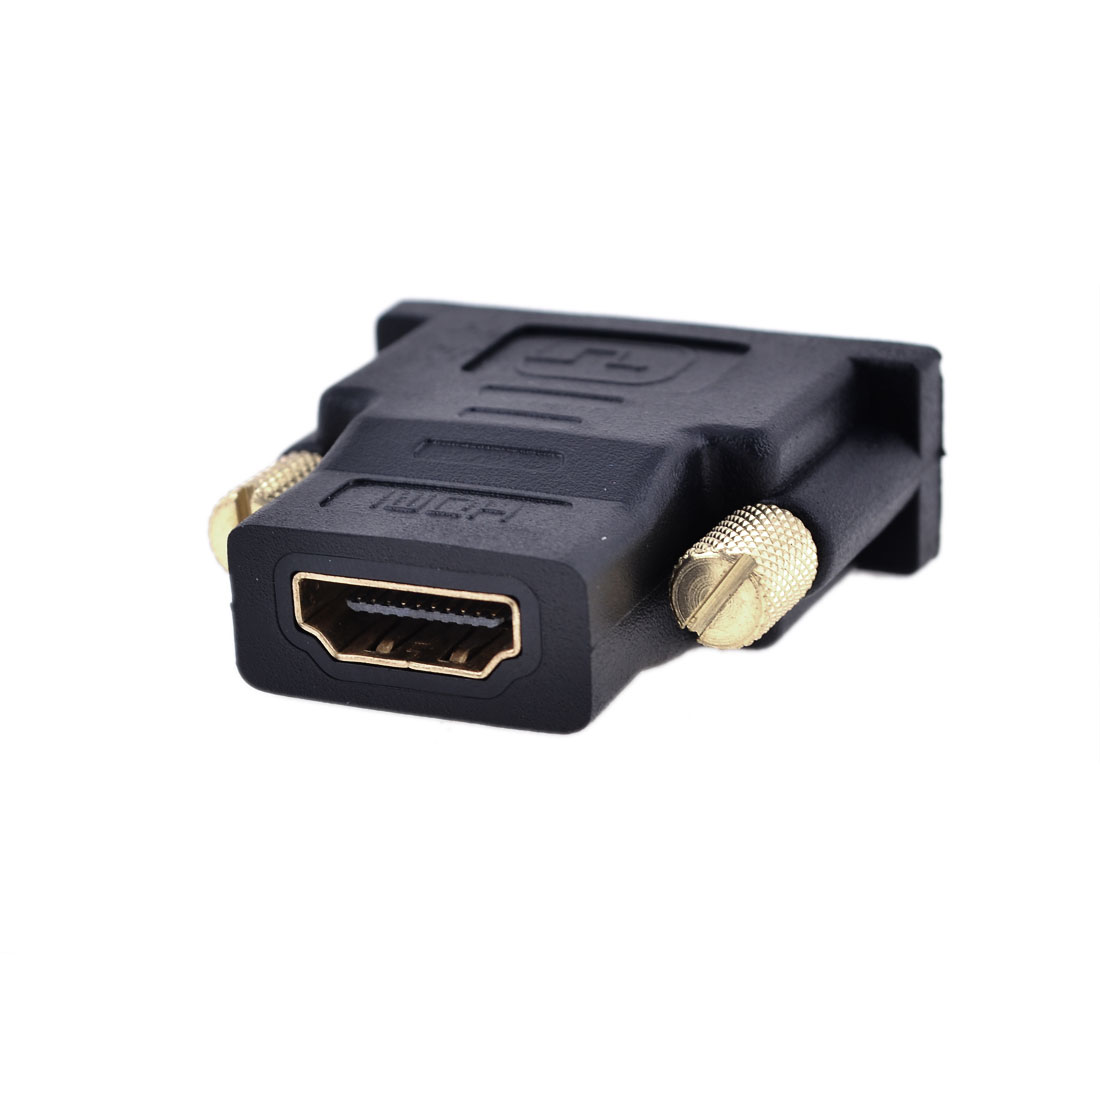 Gold Tone DVI-D Dual Link 24+1 Male to HDMI Female Audio Video Adapter